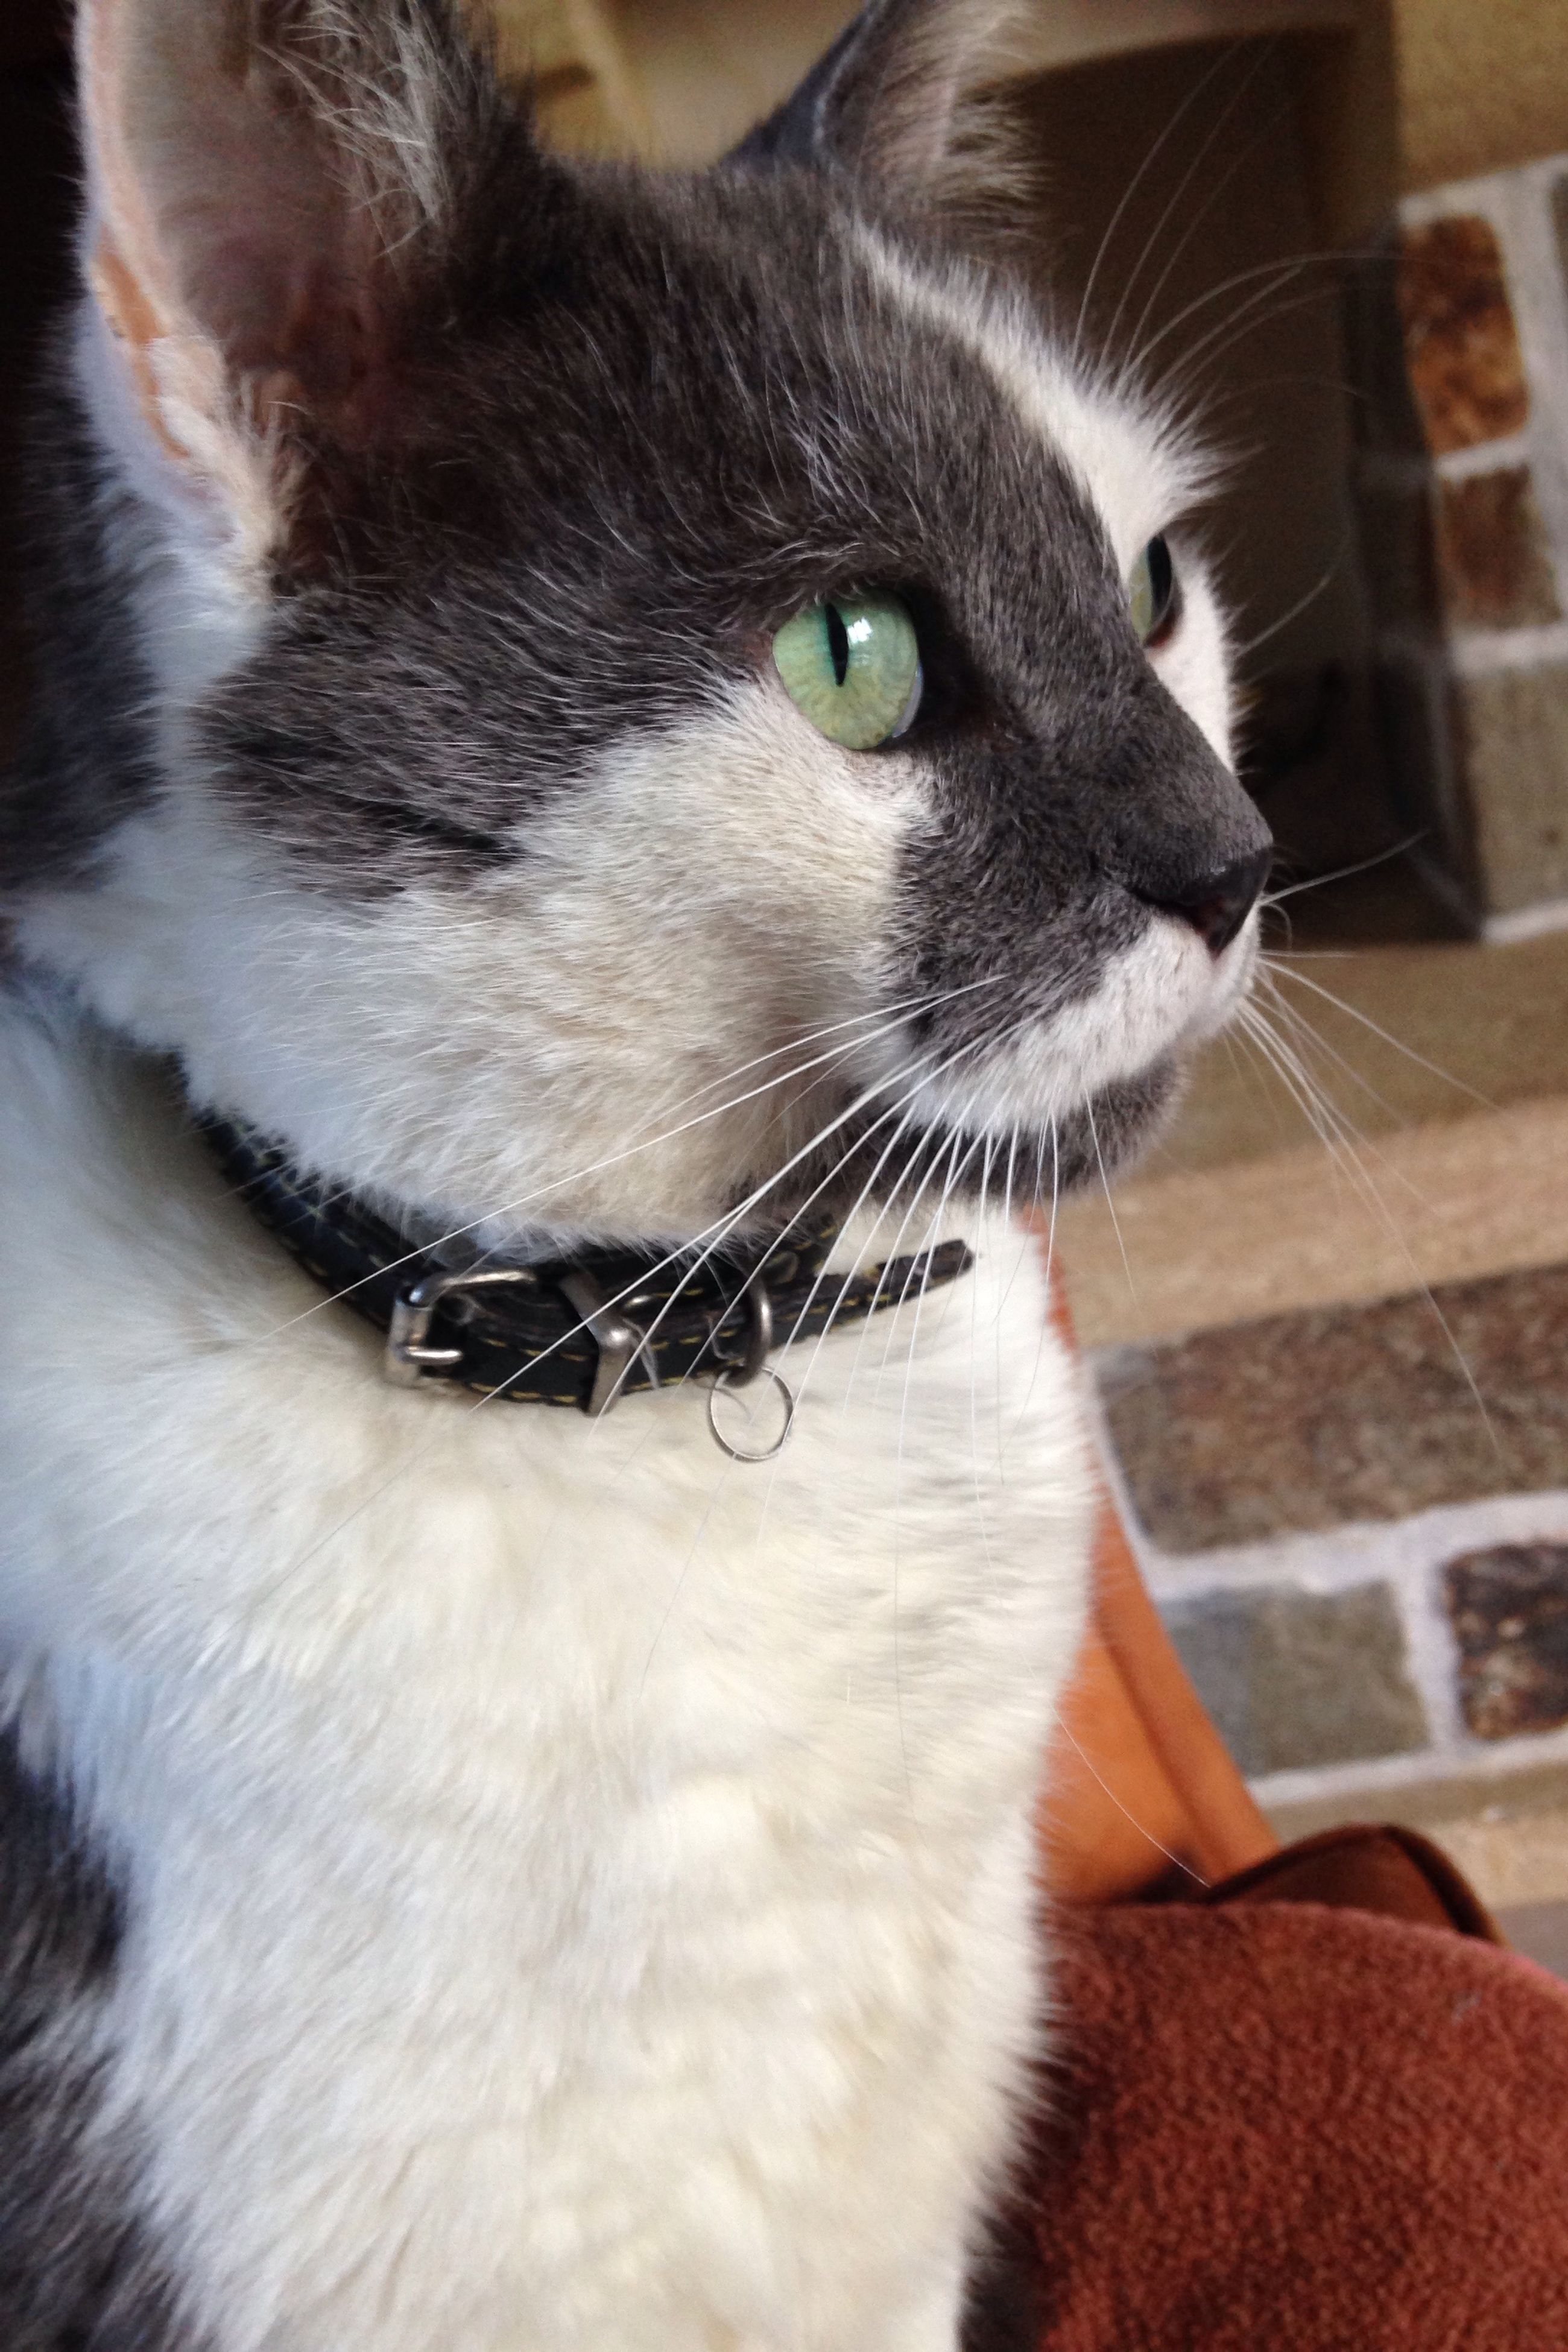 domestic cat, pets, cat, one animal, domestic animals, animal themes, feline, whisker, mammal, indoors, close-up, animal head, animal eye, looking away, focus on foreground, alertness, relaxation, home interior, staring, part of